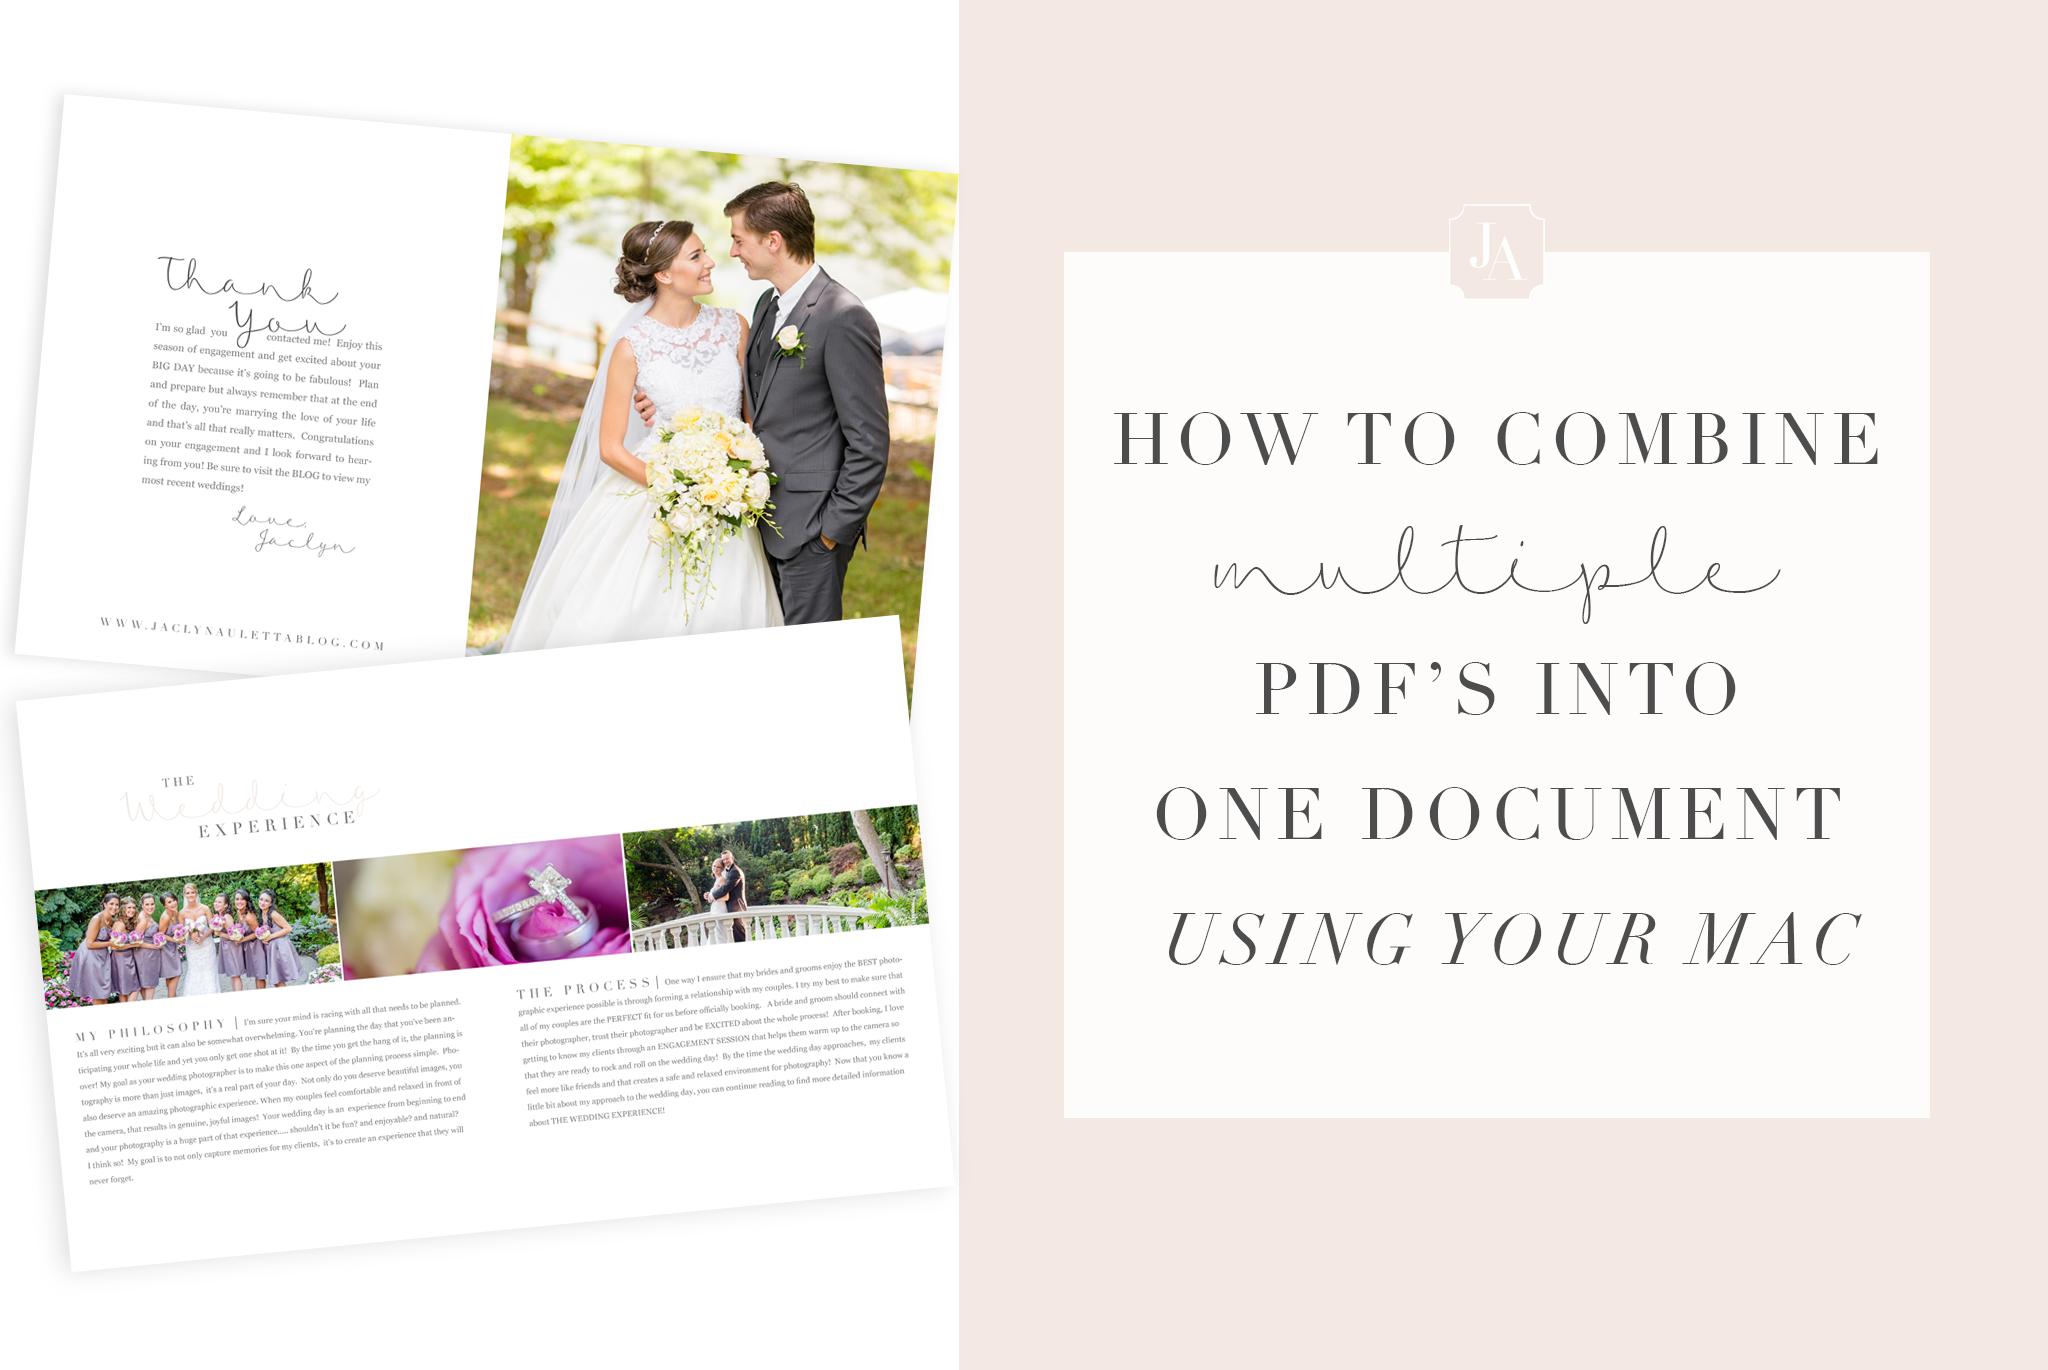 How to magically make six PDFs turn into one document